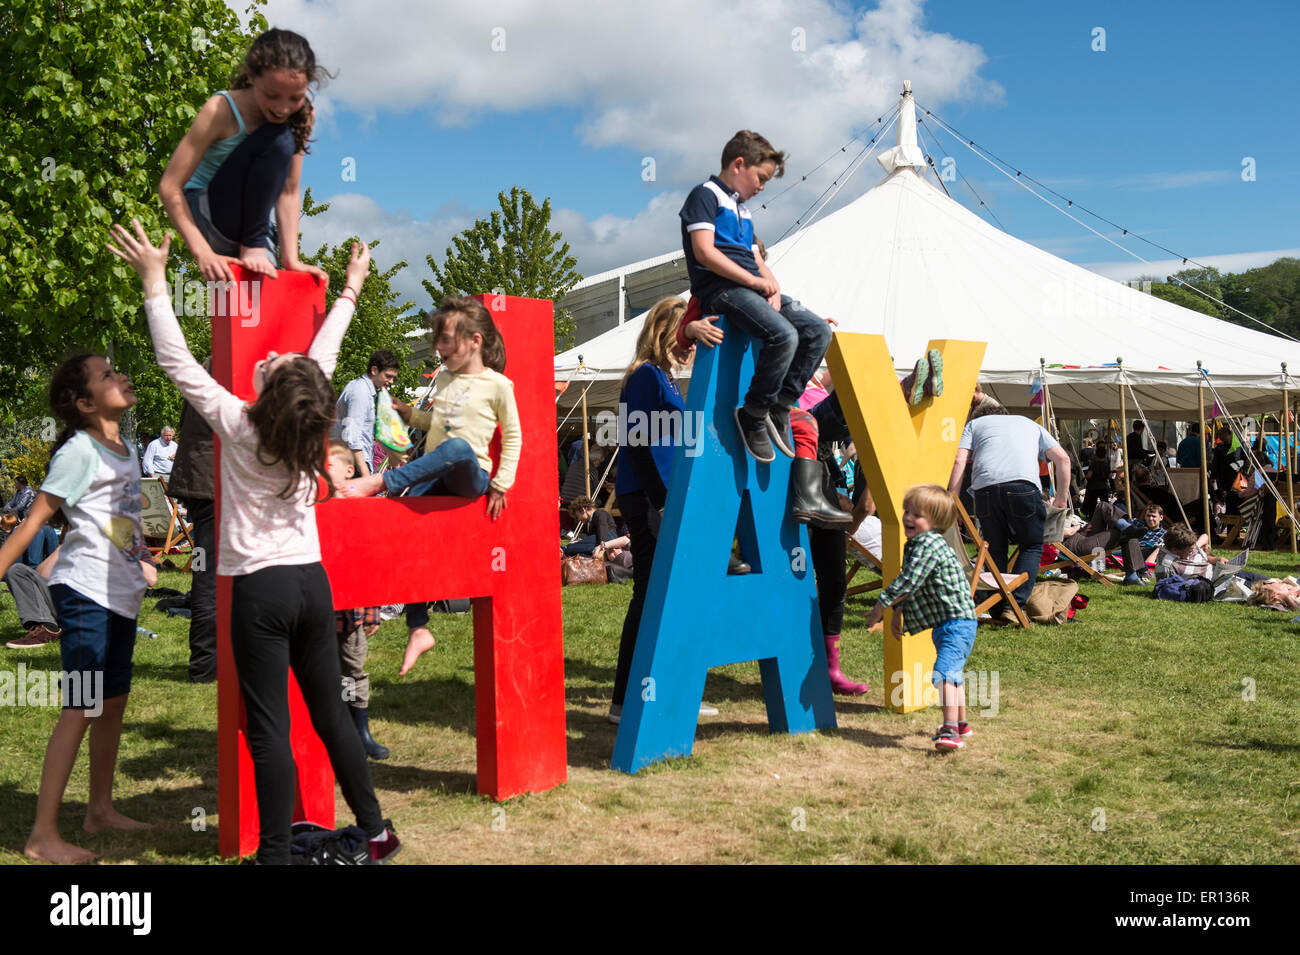 Hay-on-Wye, Wales, UK. 24th May, 2015. Children play on a sign at the Hay Festival on May 24, 2015 in Hay-on-Wye, - Stock Image